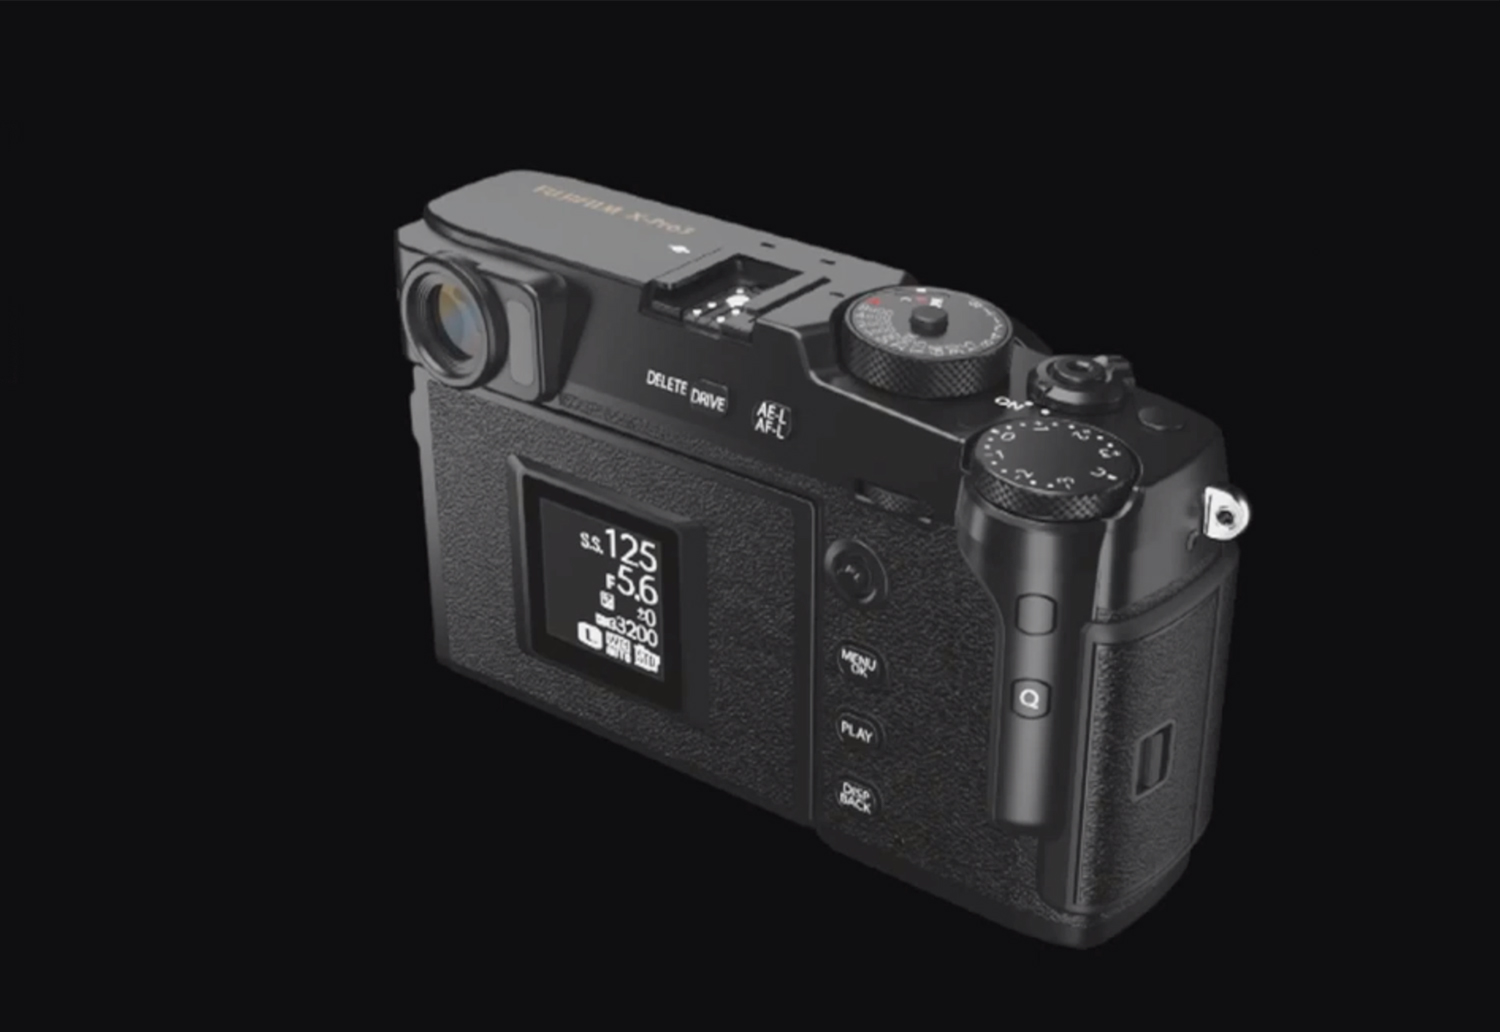 Image: A marvelous innovation or a stupid mistake? Whatever your opinion, the new Fuji X-Pro 3 defin...